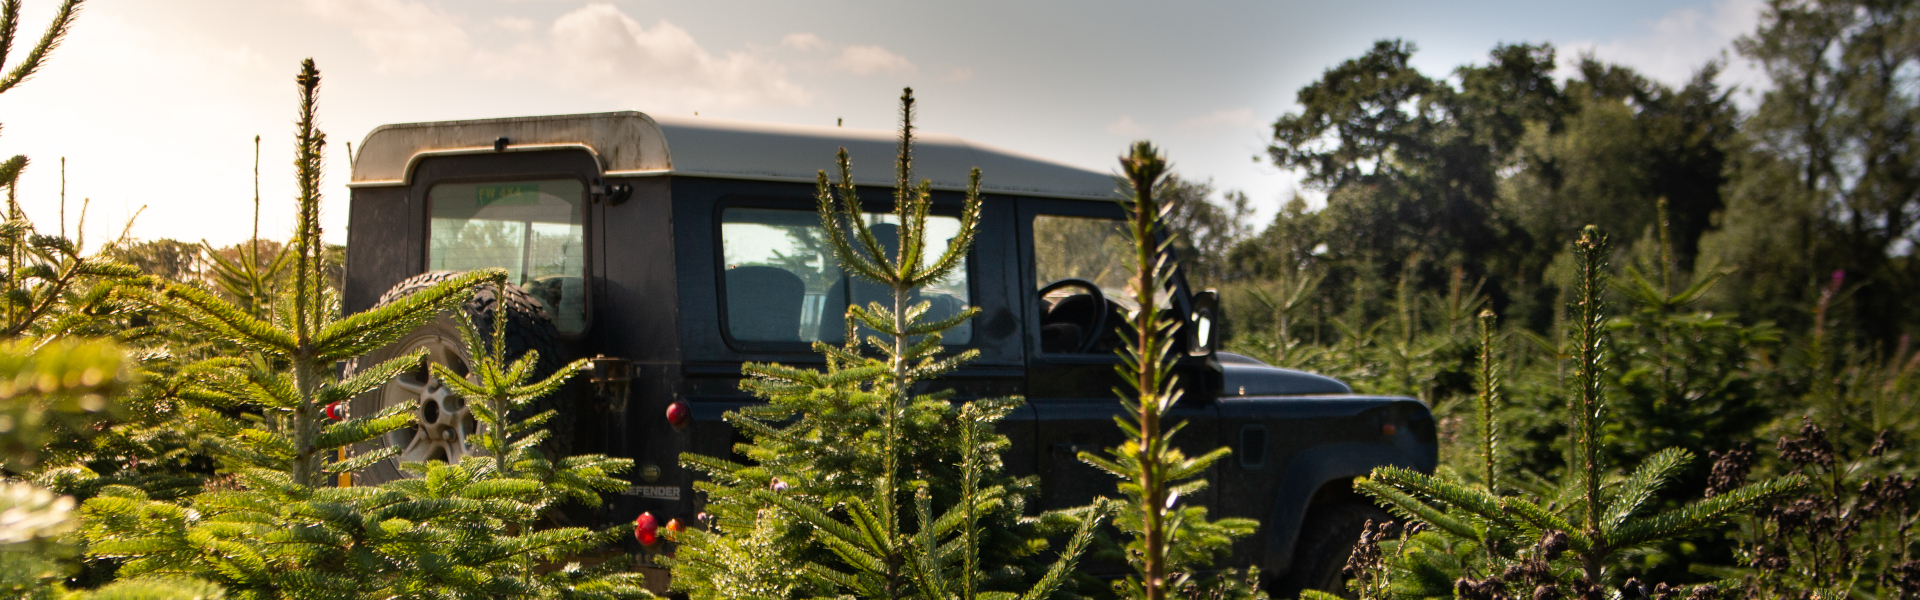 Land Rover amongst the Christmas Trees